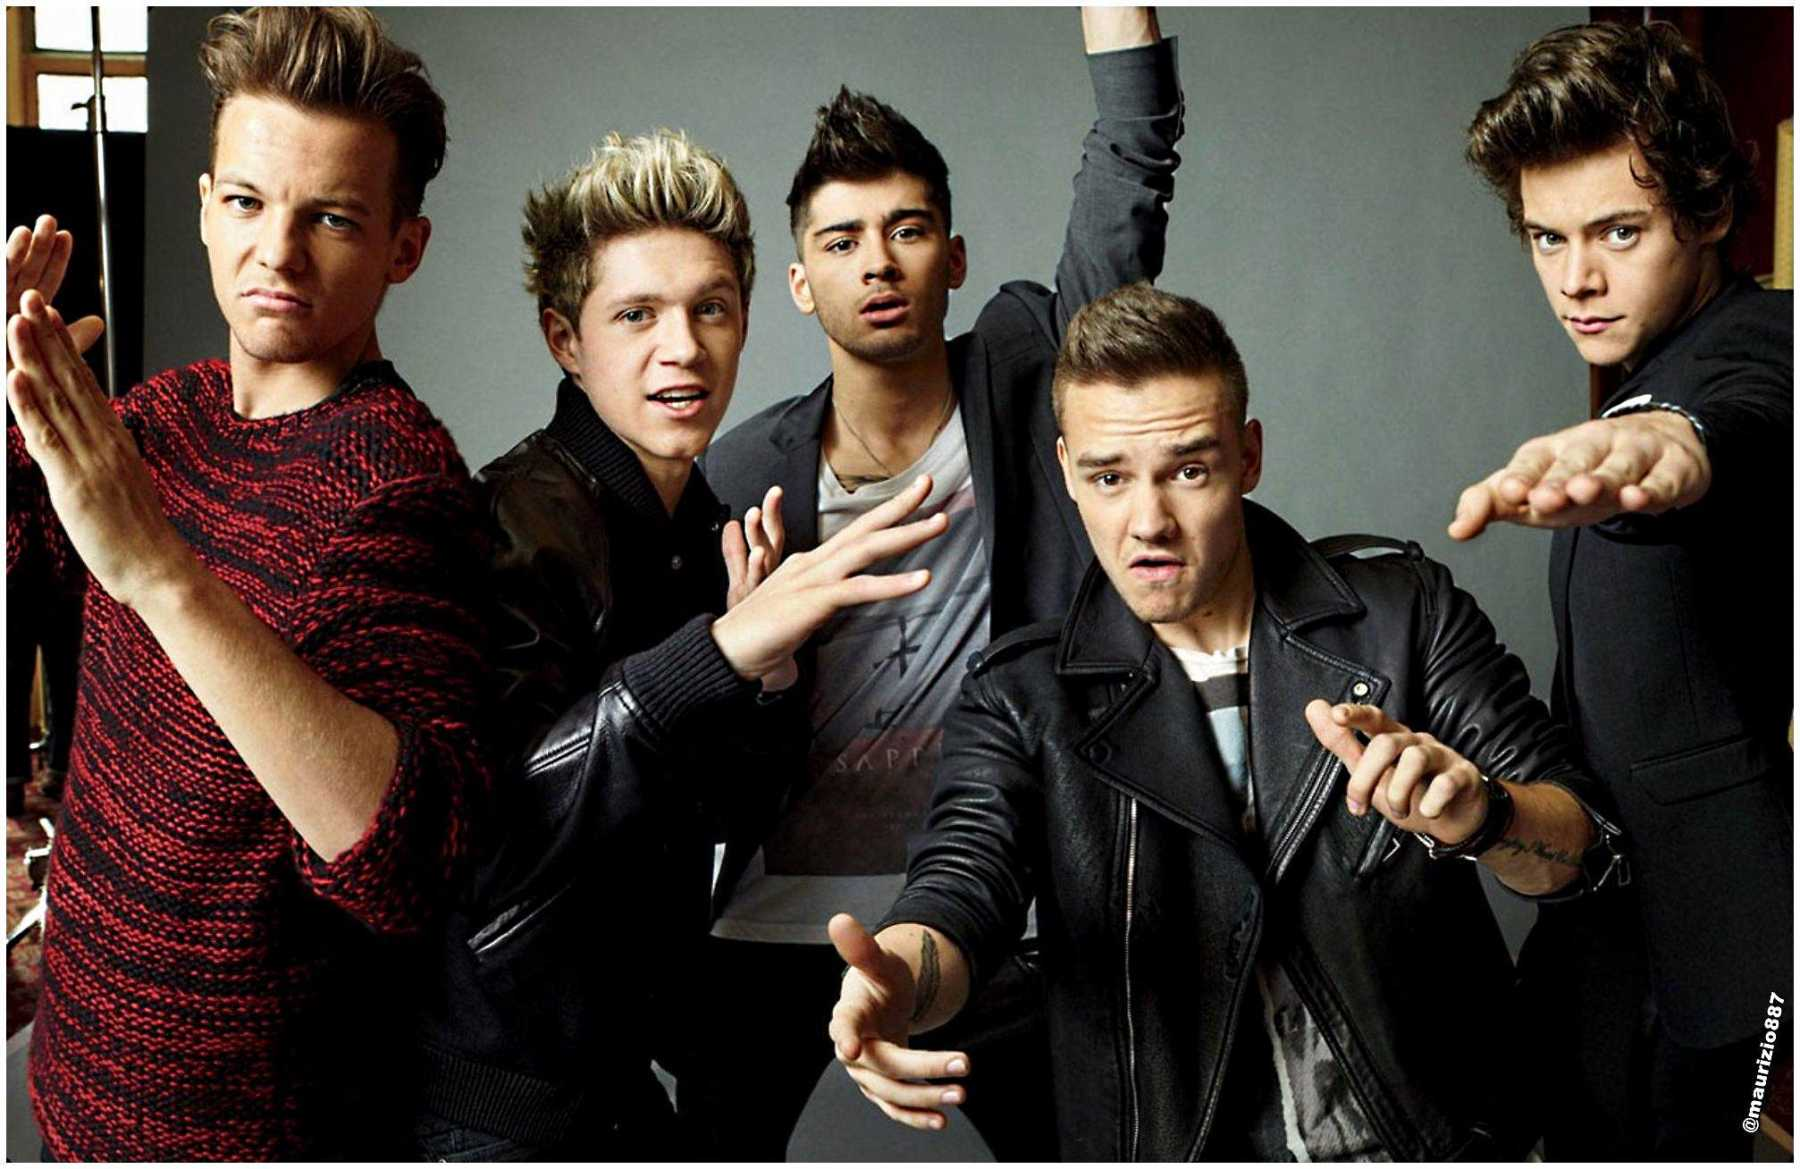 Has One Direction Gone In The Plagiarism Direction? | one direction